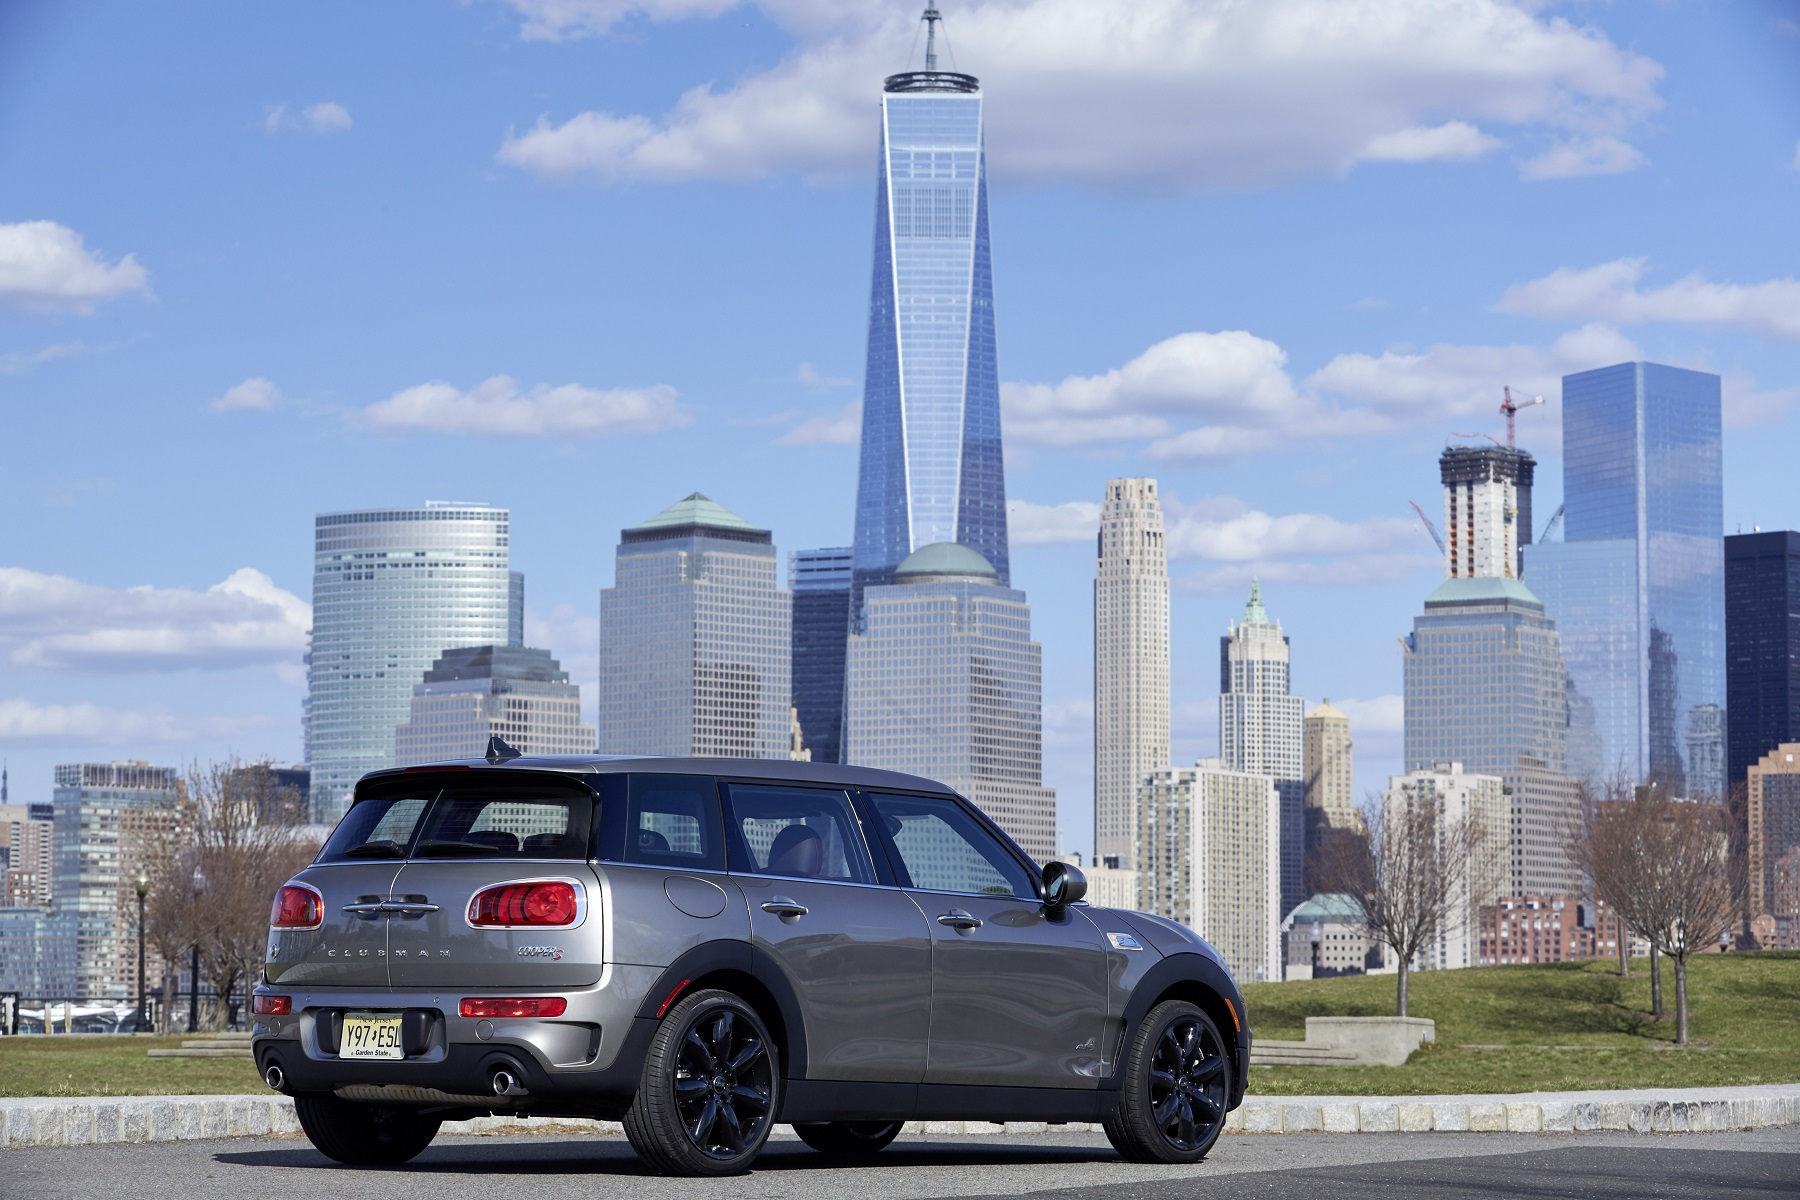 mini cooper s clubman: s is for small and sporty - new on wheels